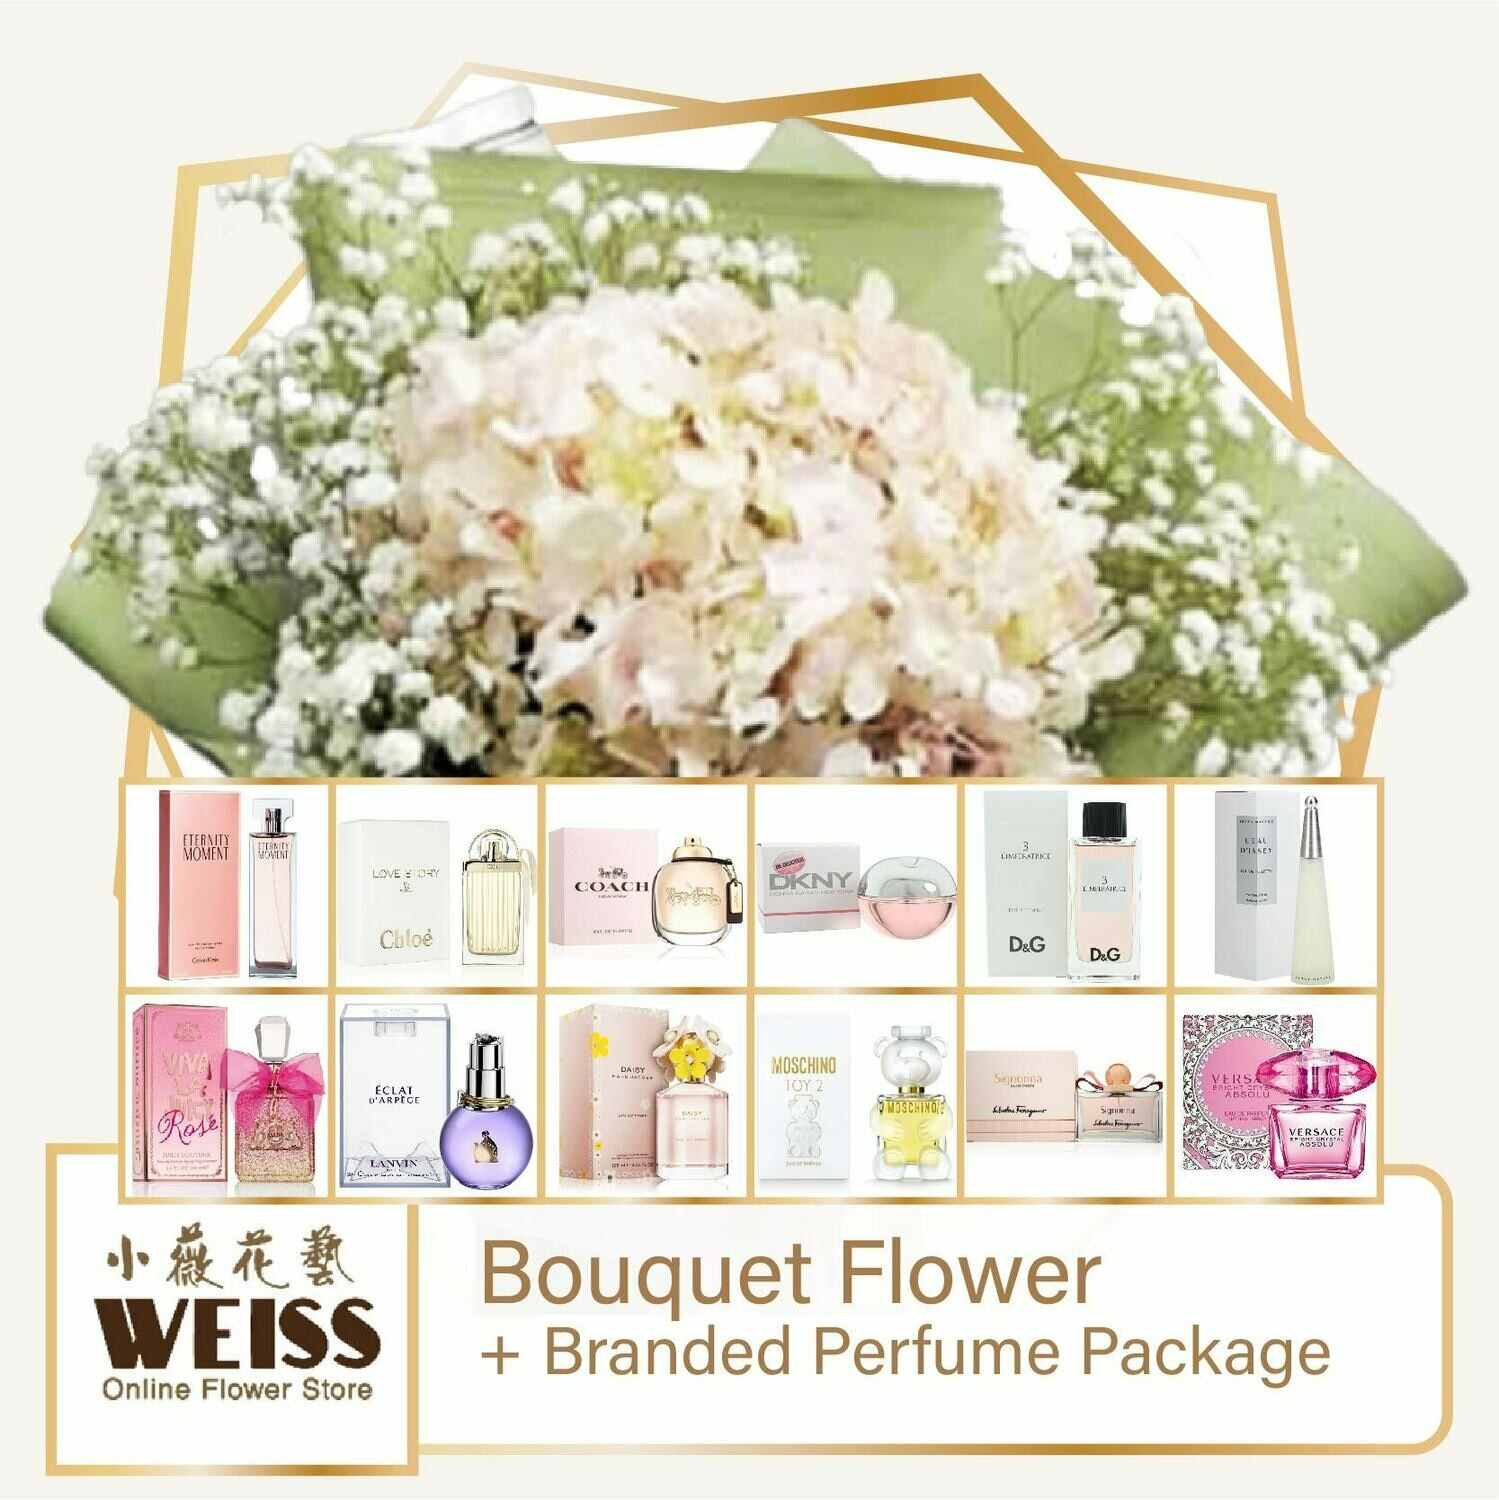 Weiss Florist Hydrangea Coloured Baby Breath + Branded Perfume Package (Free Shipping! Only deliver in JB)